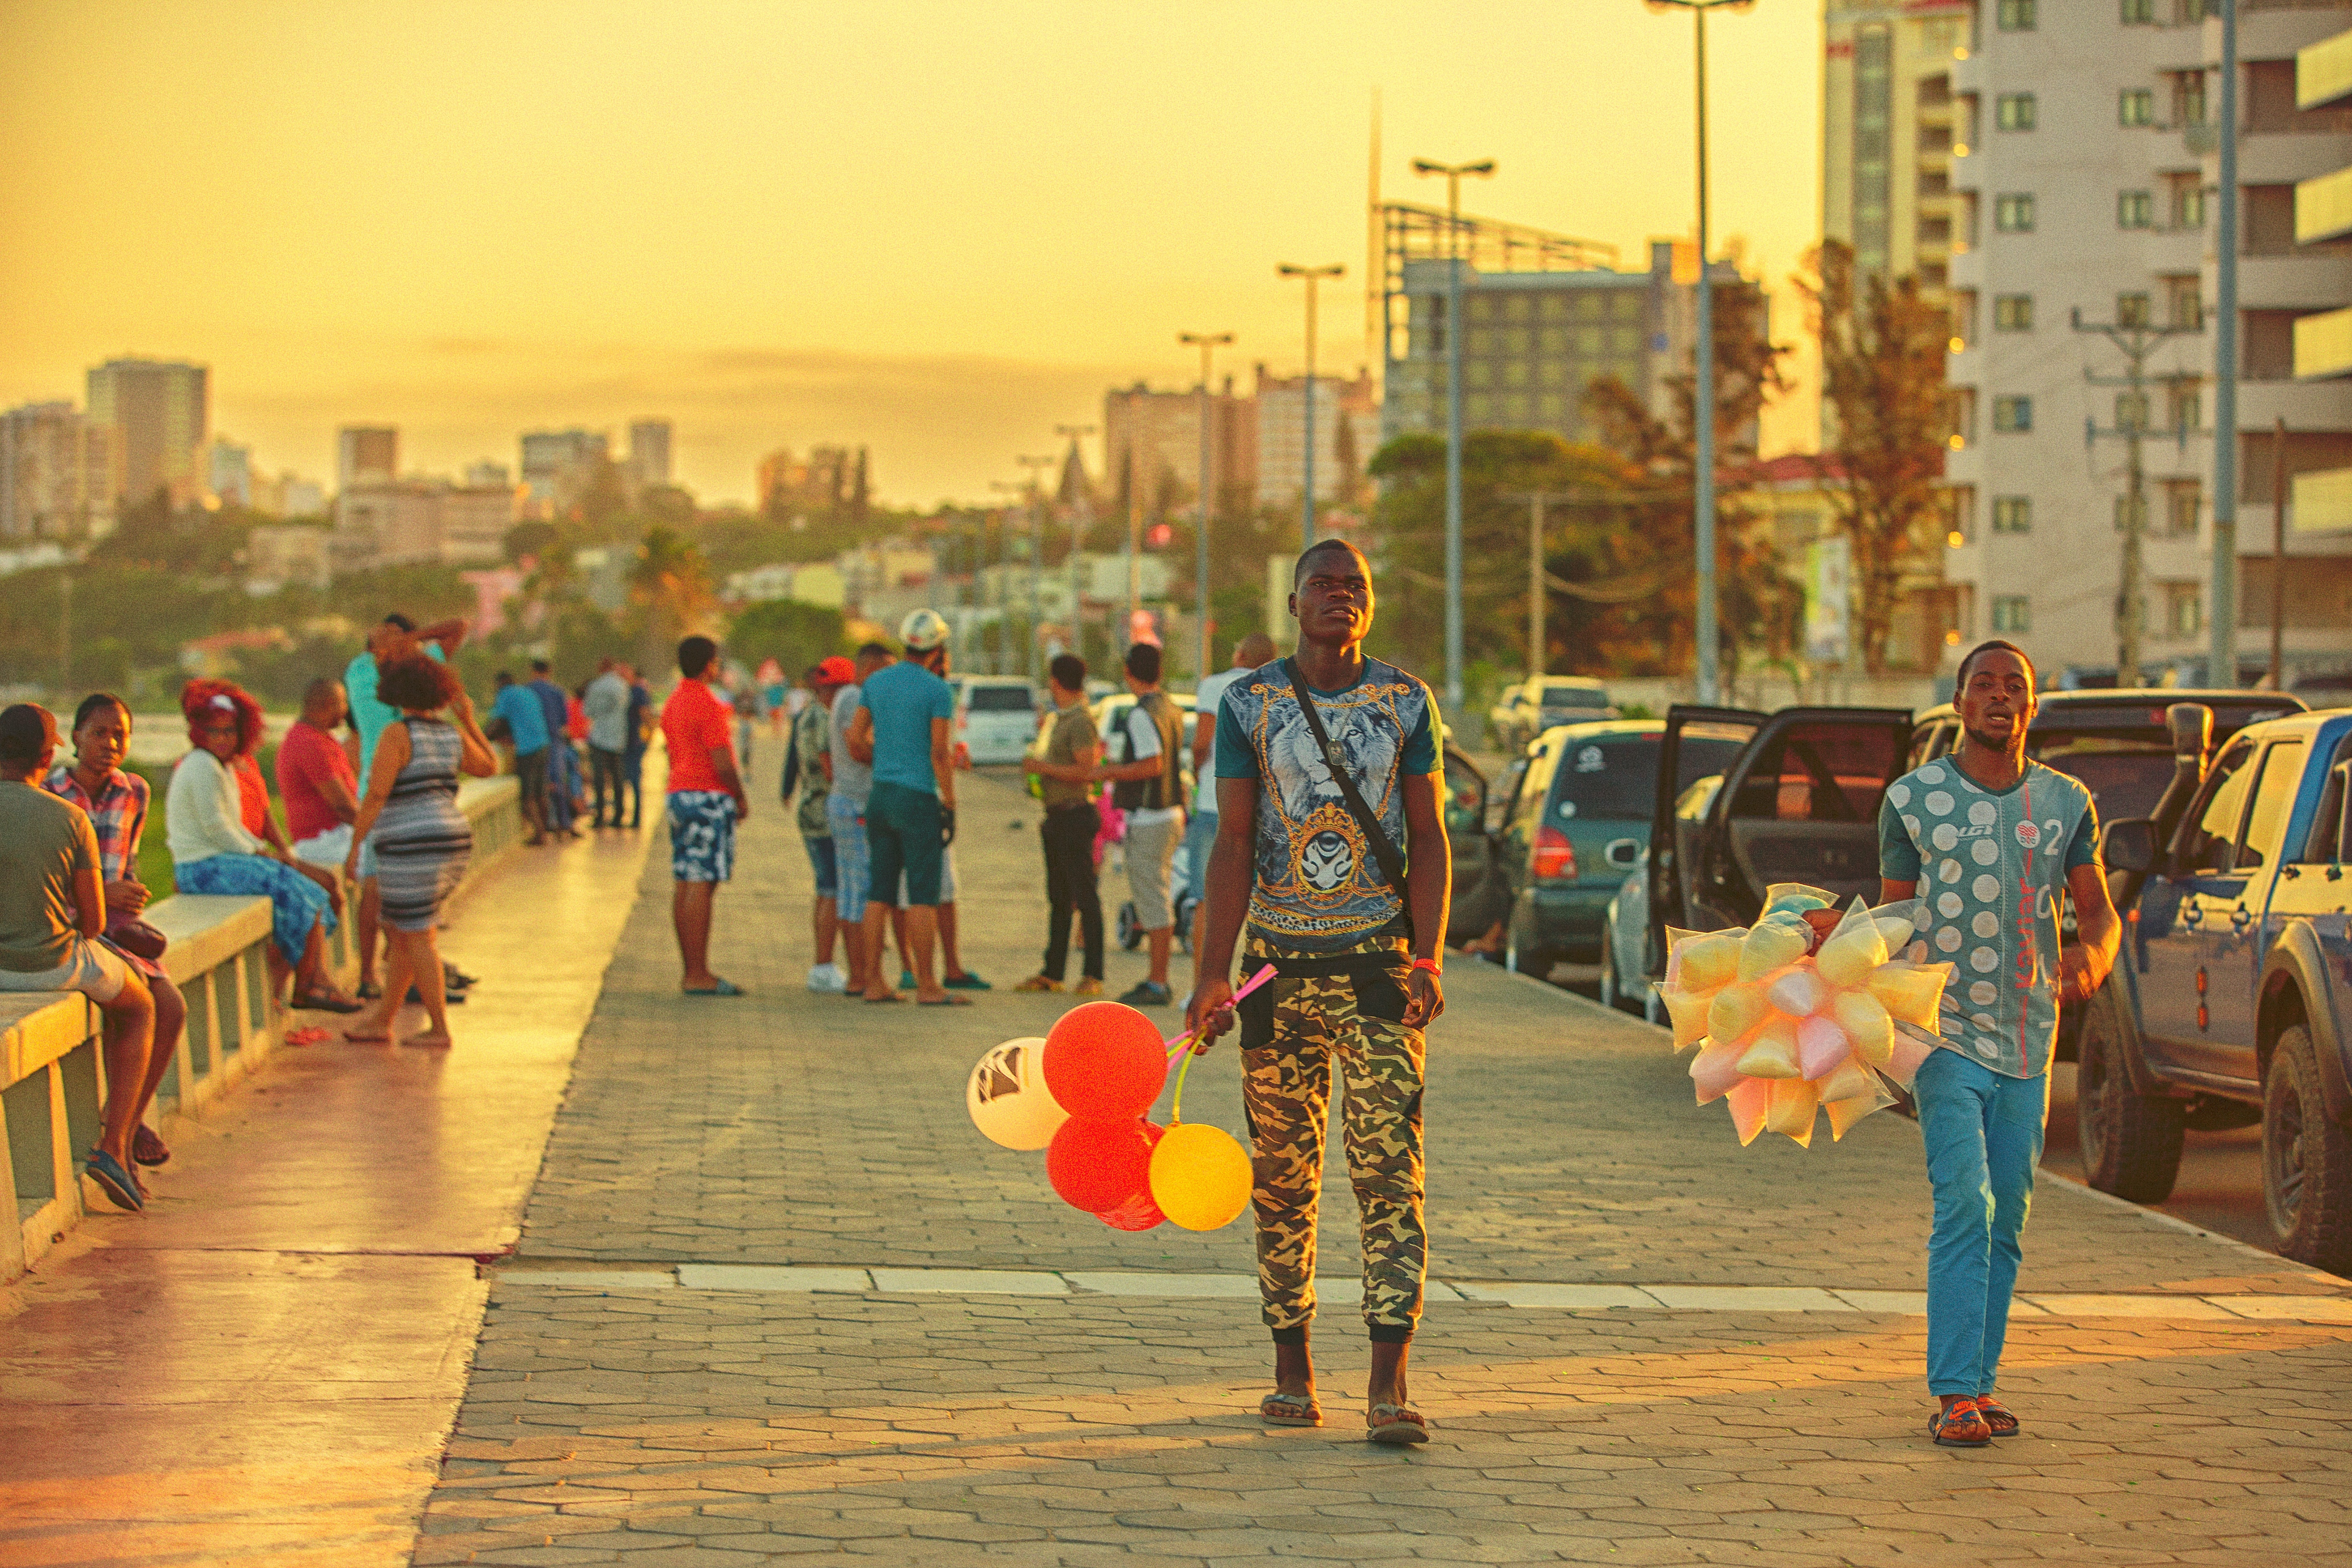 People along Avenida Marginal in the sunset in Maputo, Mozambique.